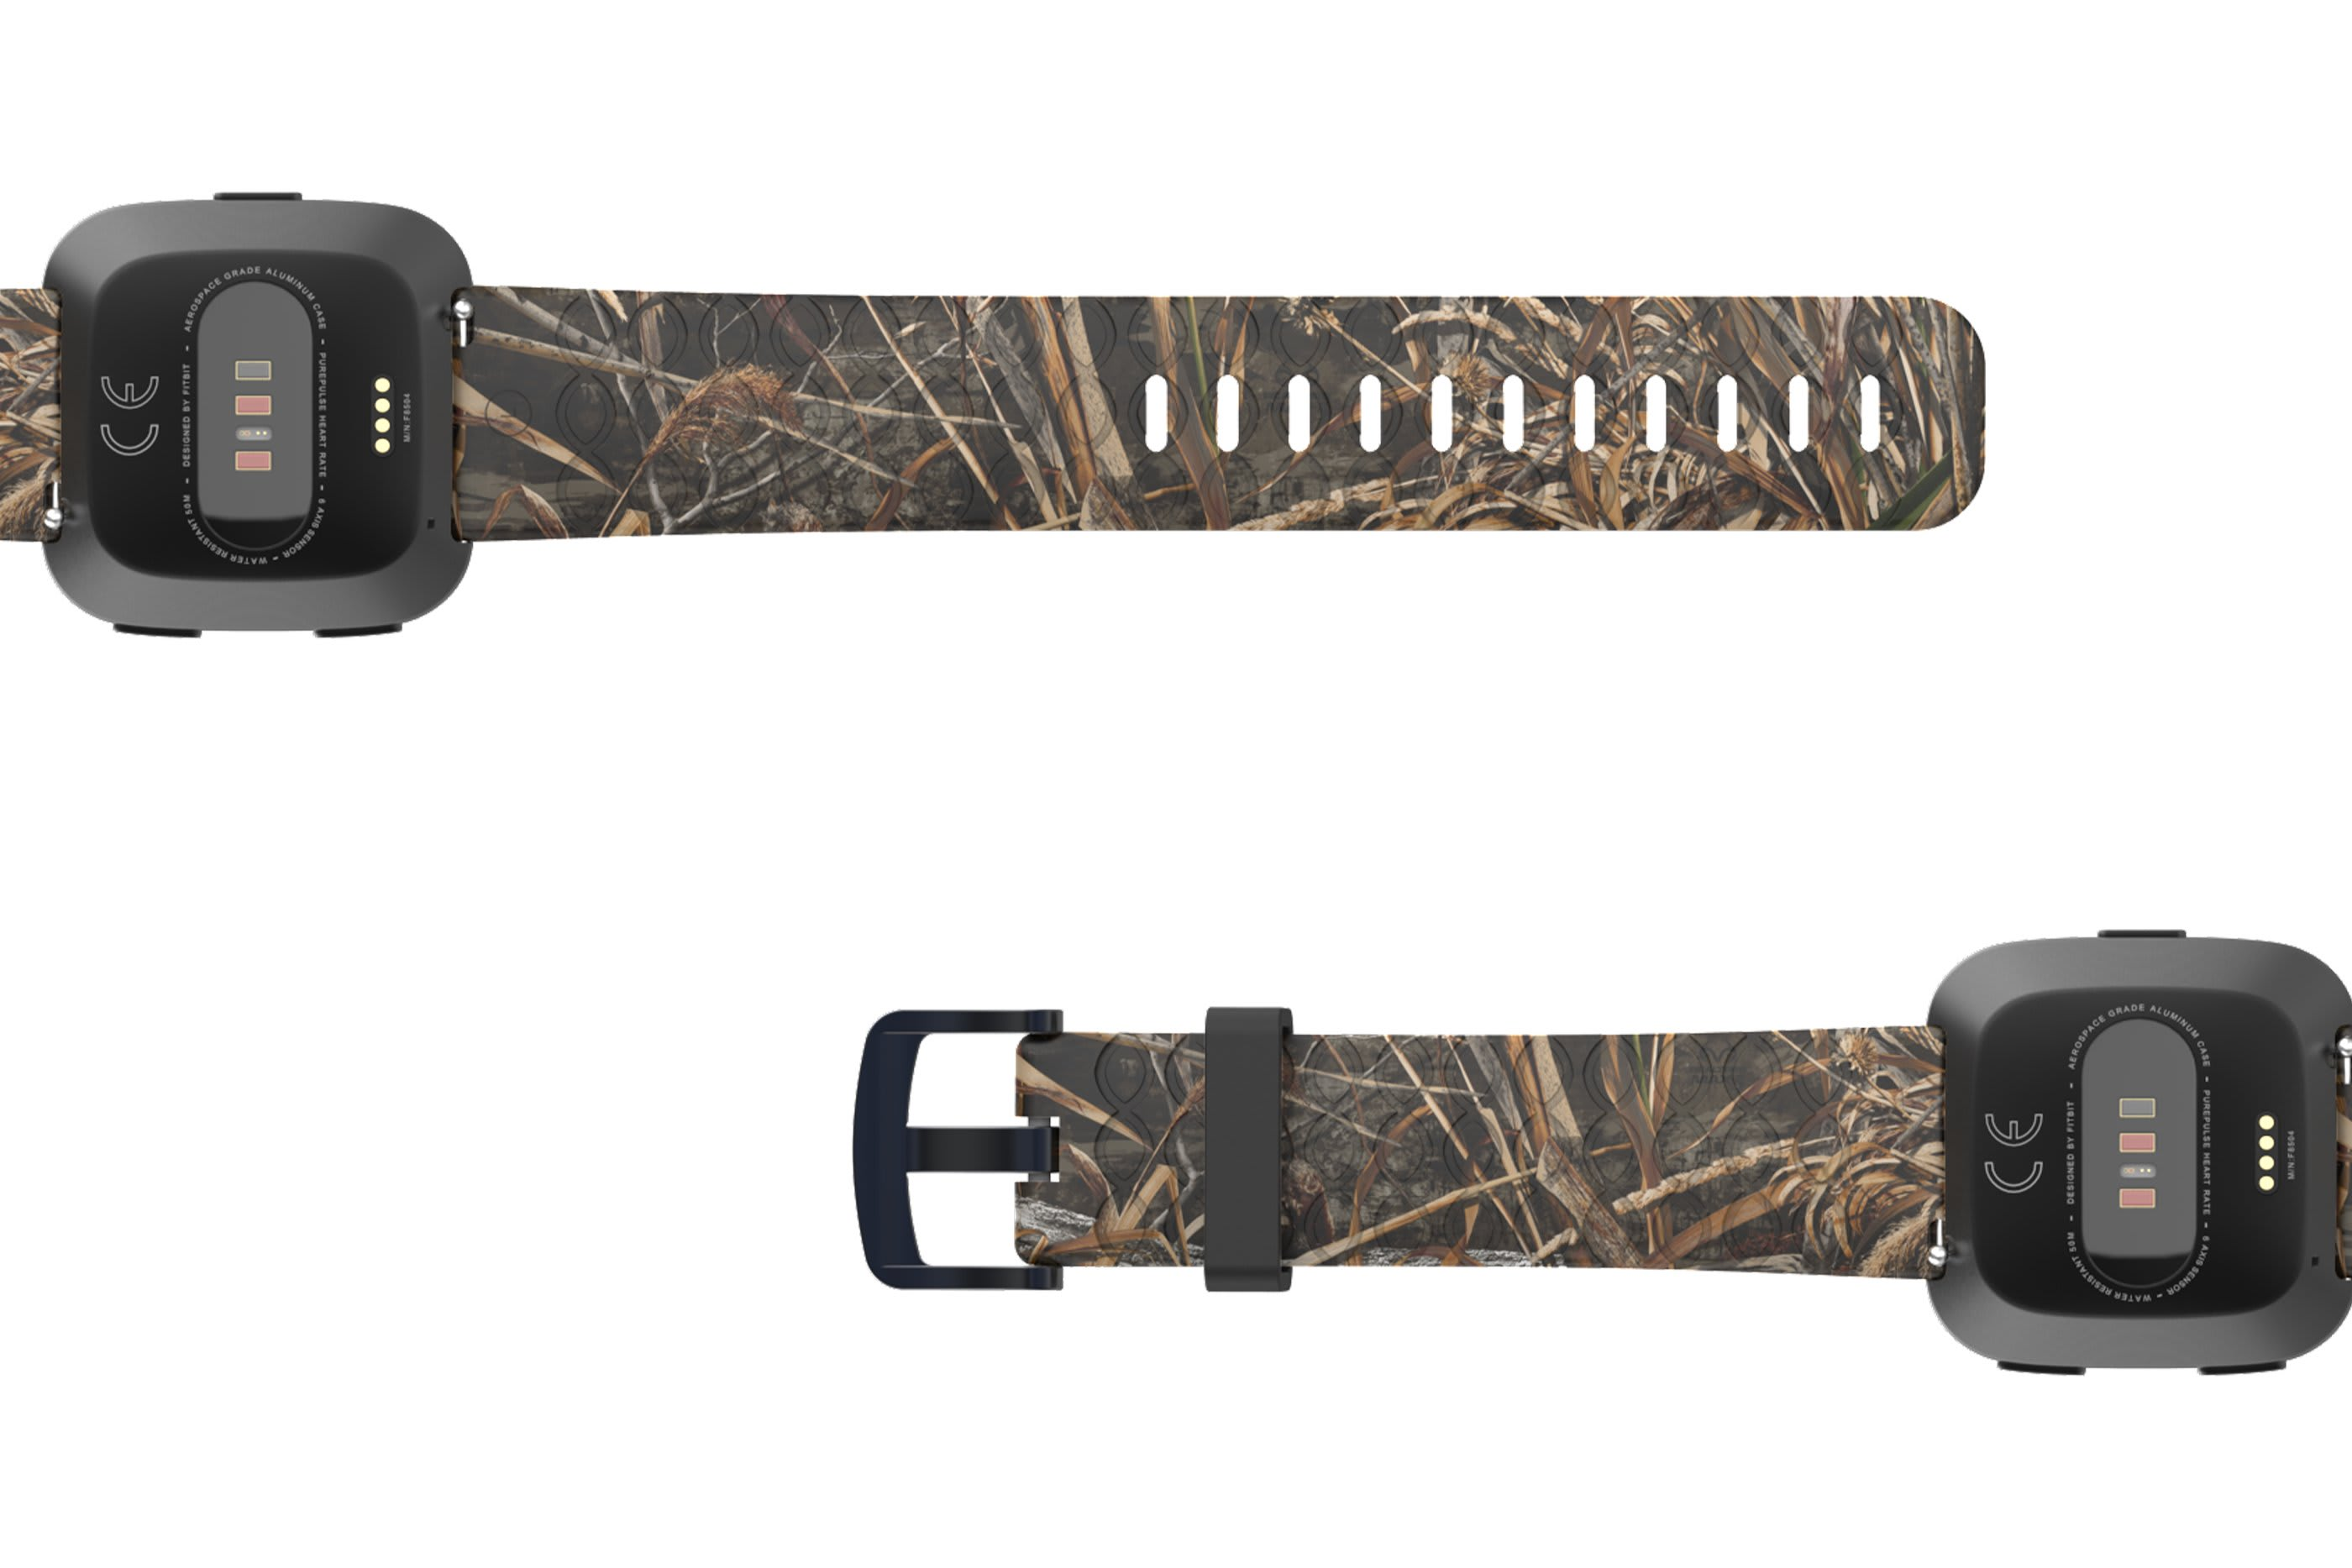 Realtree Max 5 Fitbit Versa   watch band viewed bottom up